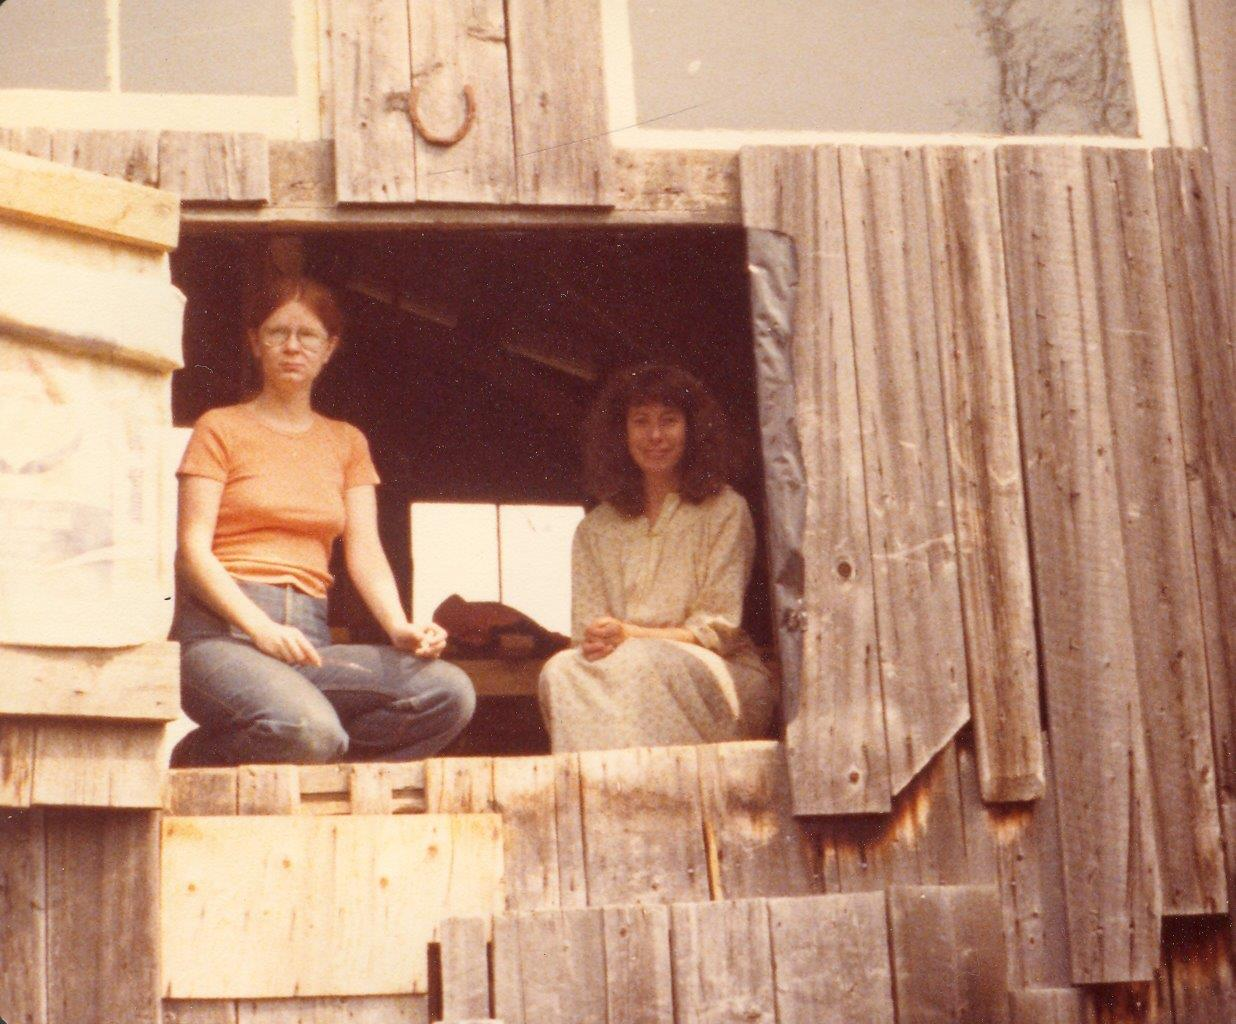 198005xx-ra-004-Barb + Nanci At Barn-Randboro